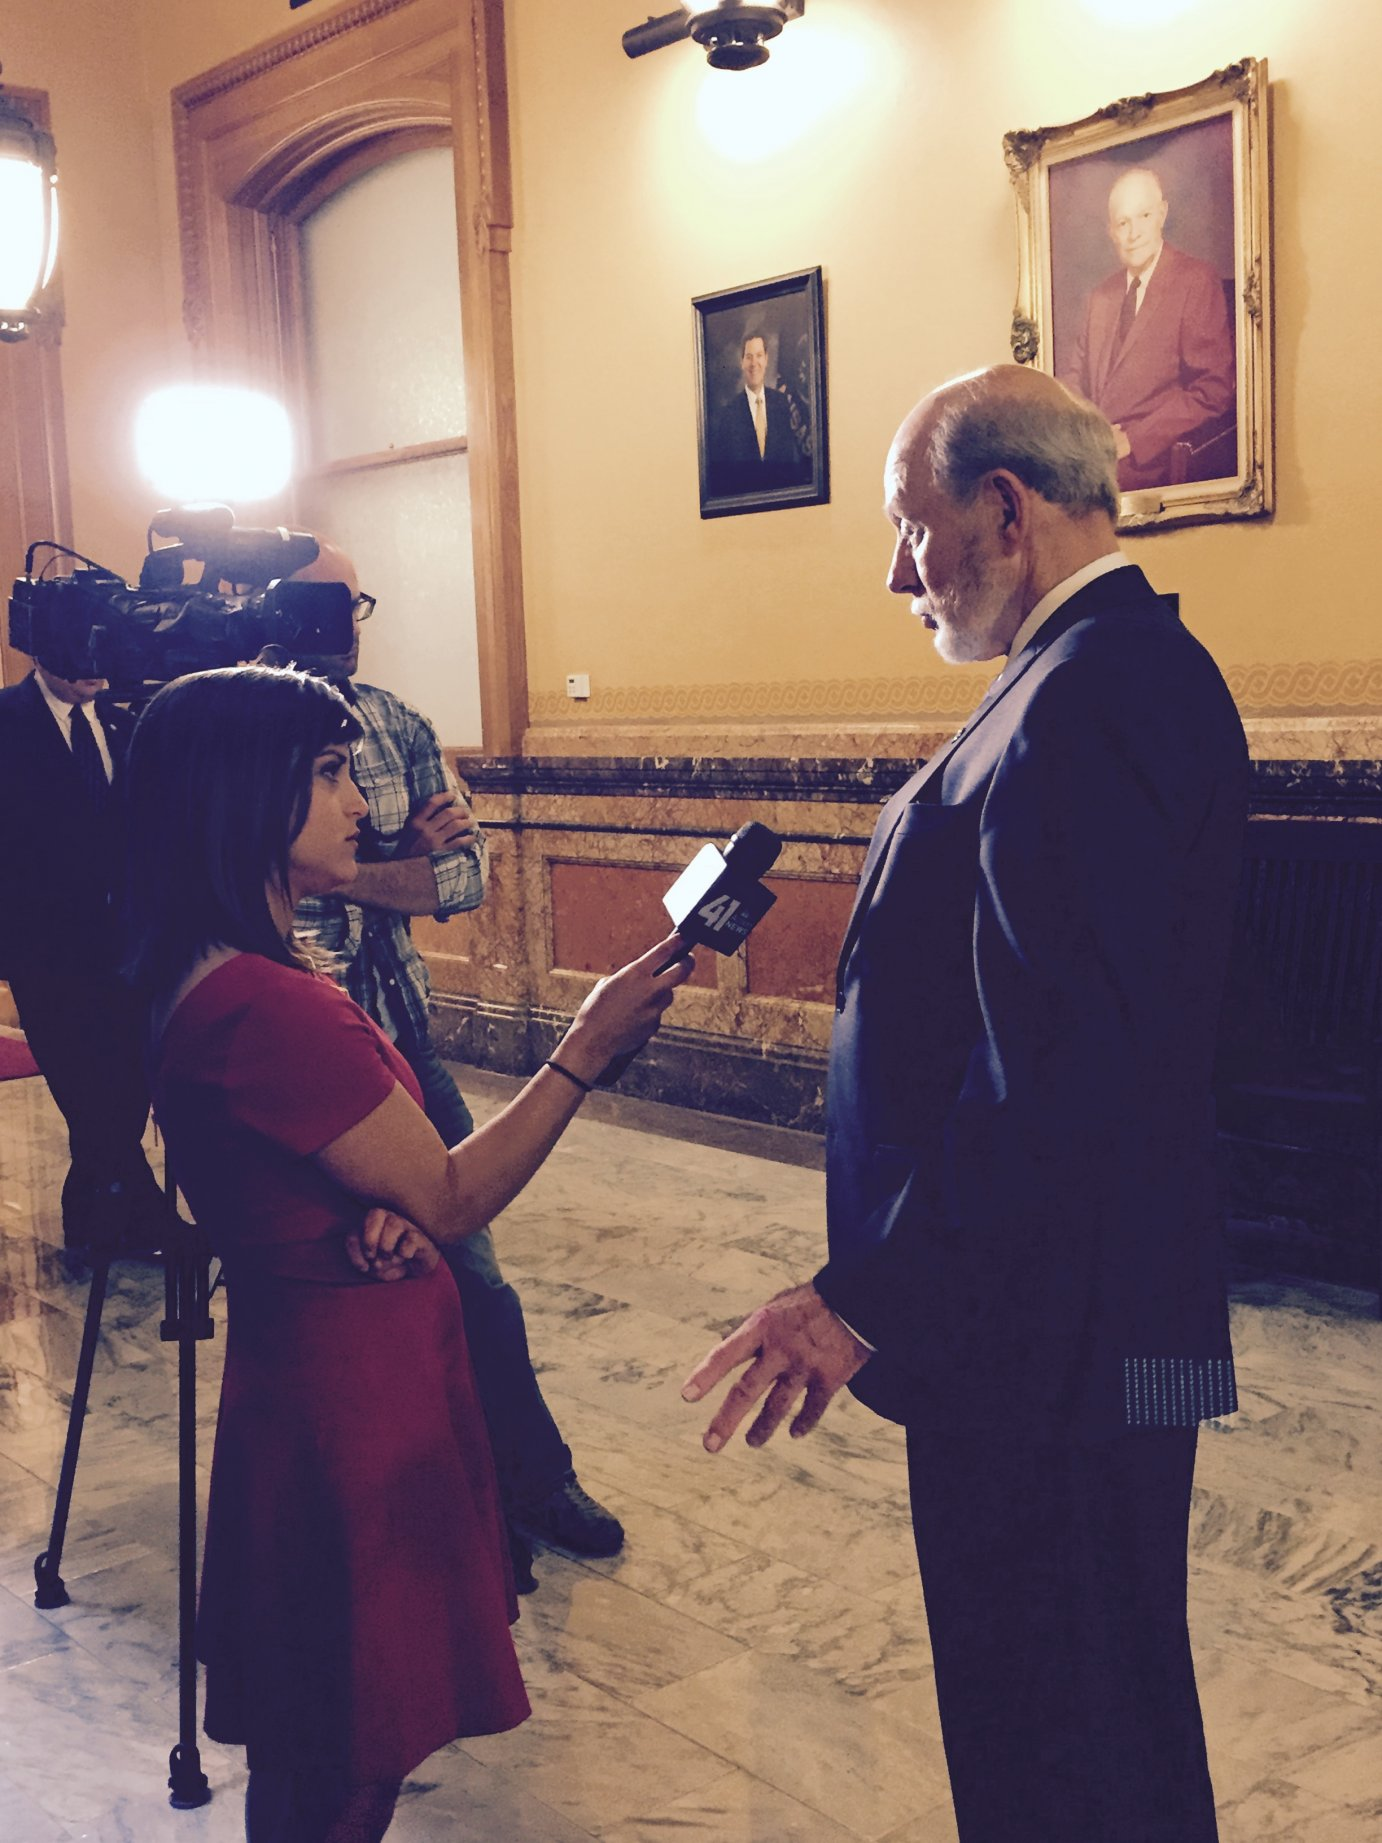 State Senator Les Donovan, chairman of the Senate Tax Committee, interviewed by a TV reporter.  (Photo by Jim McLean, KHI News Service)